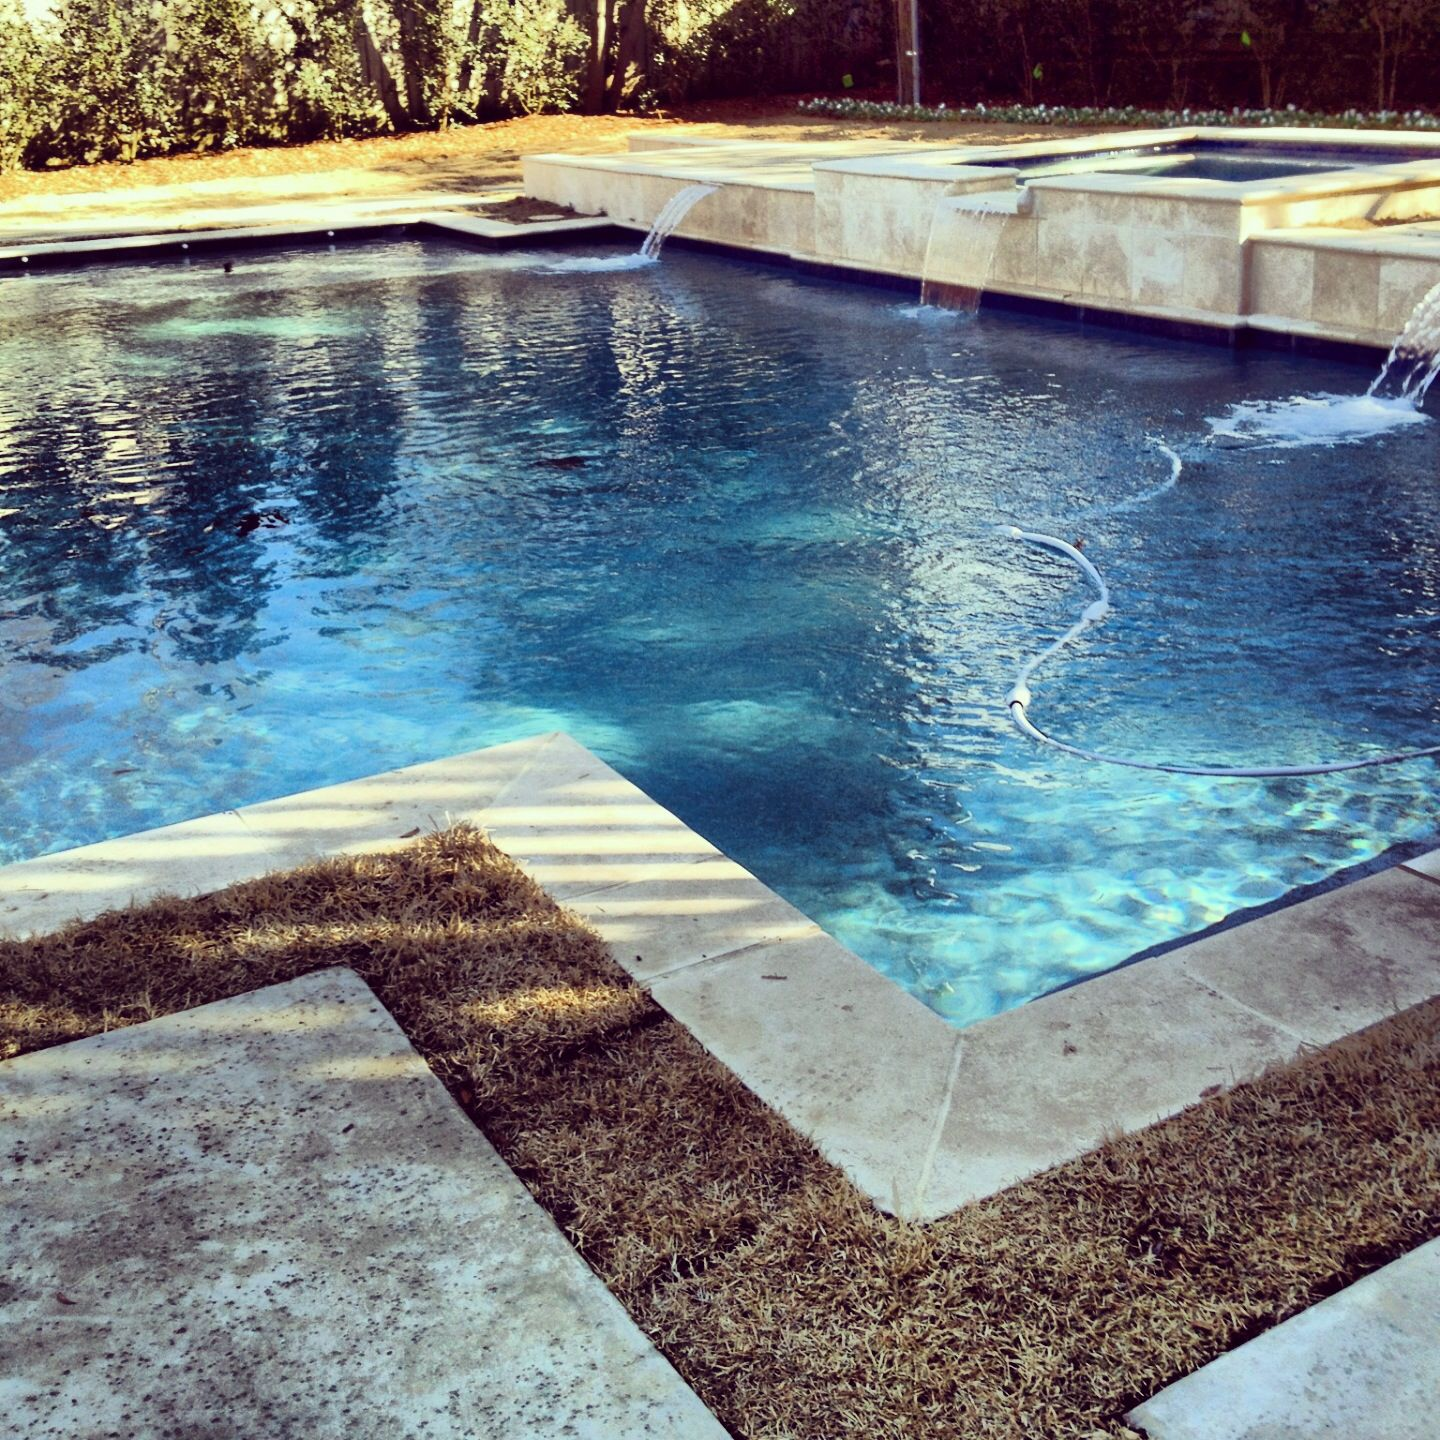 straightline pool and spa hottub with scupper